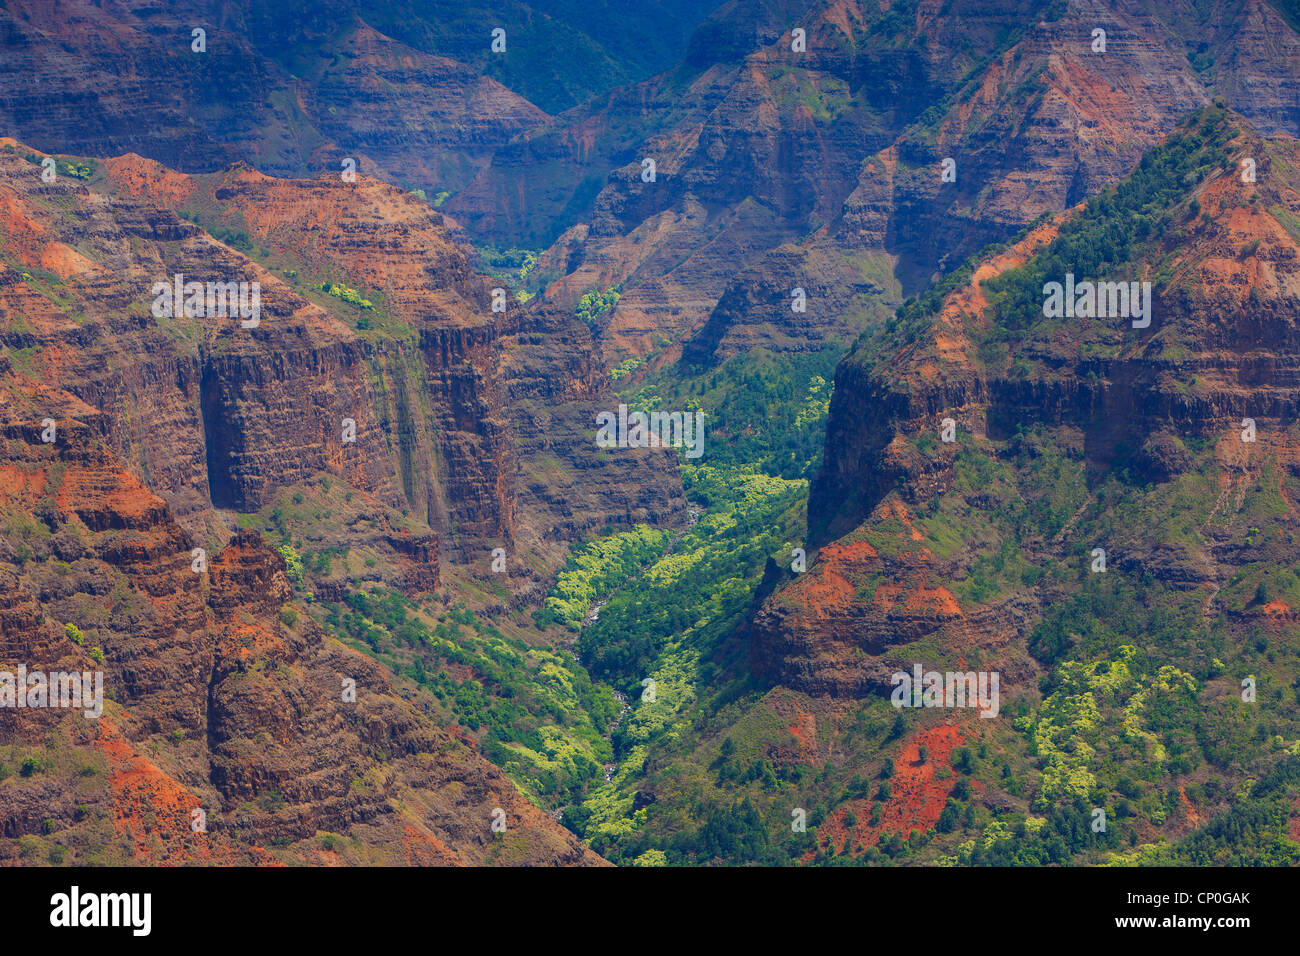 View over Waimea Canyon. Kauai, Hawaii - Stock Image